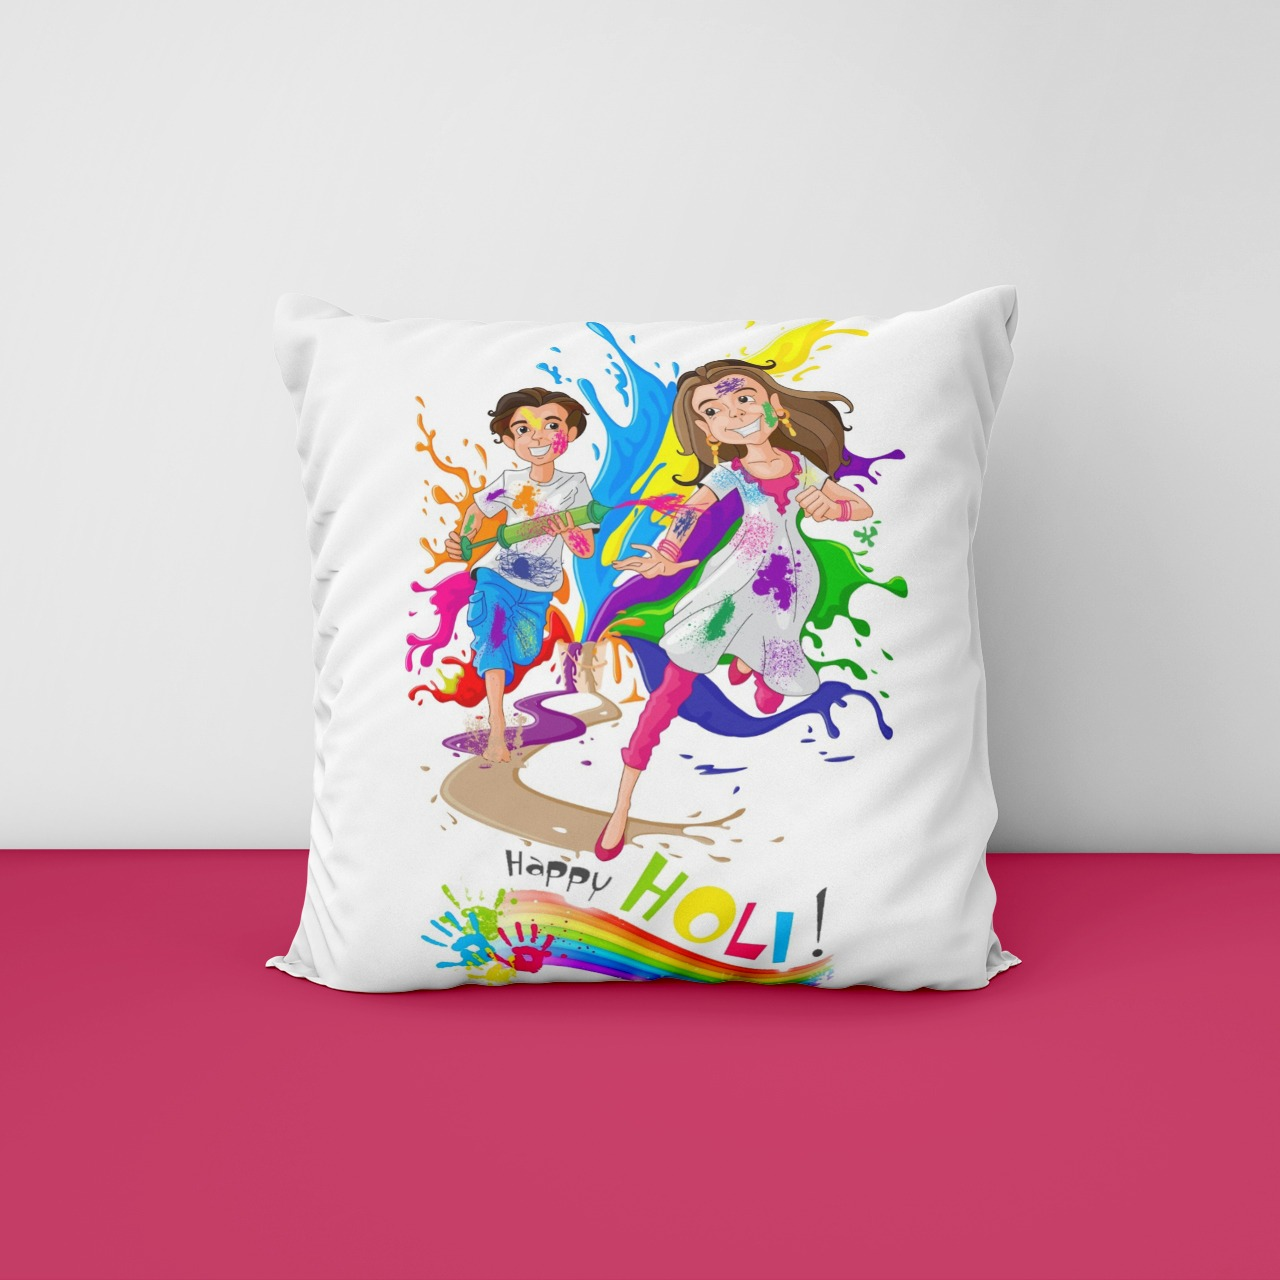 Holi Customized Satin Cushion